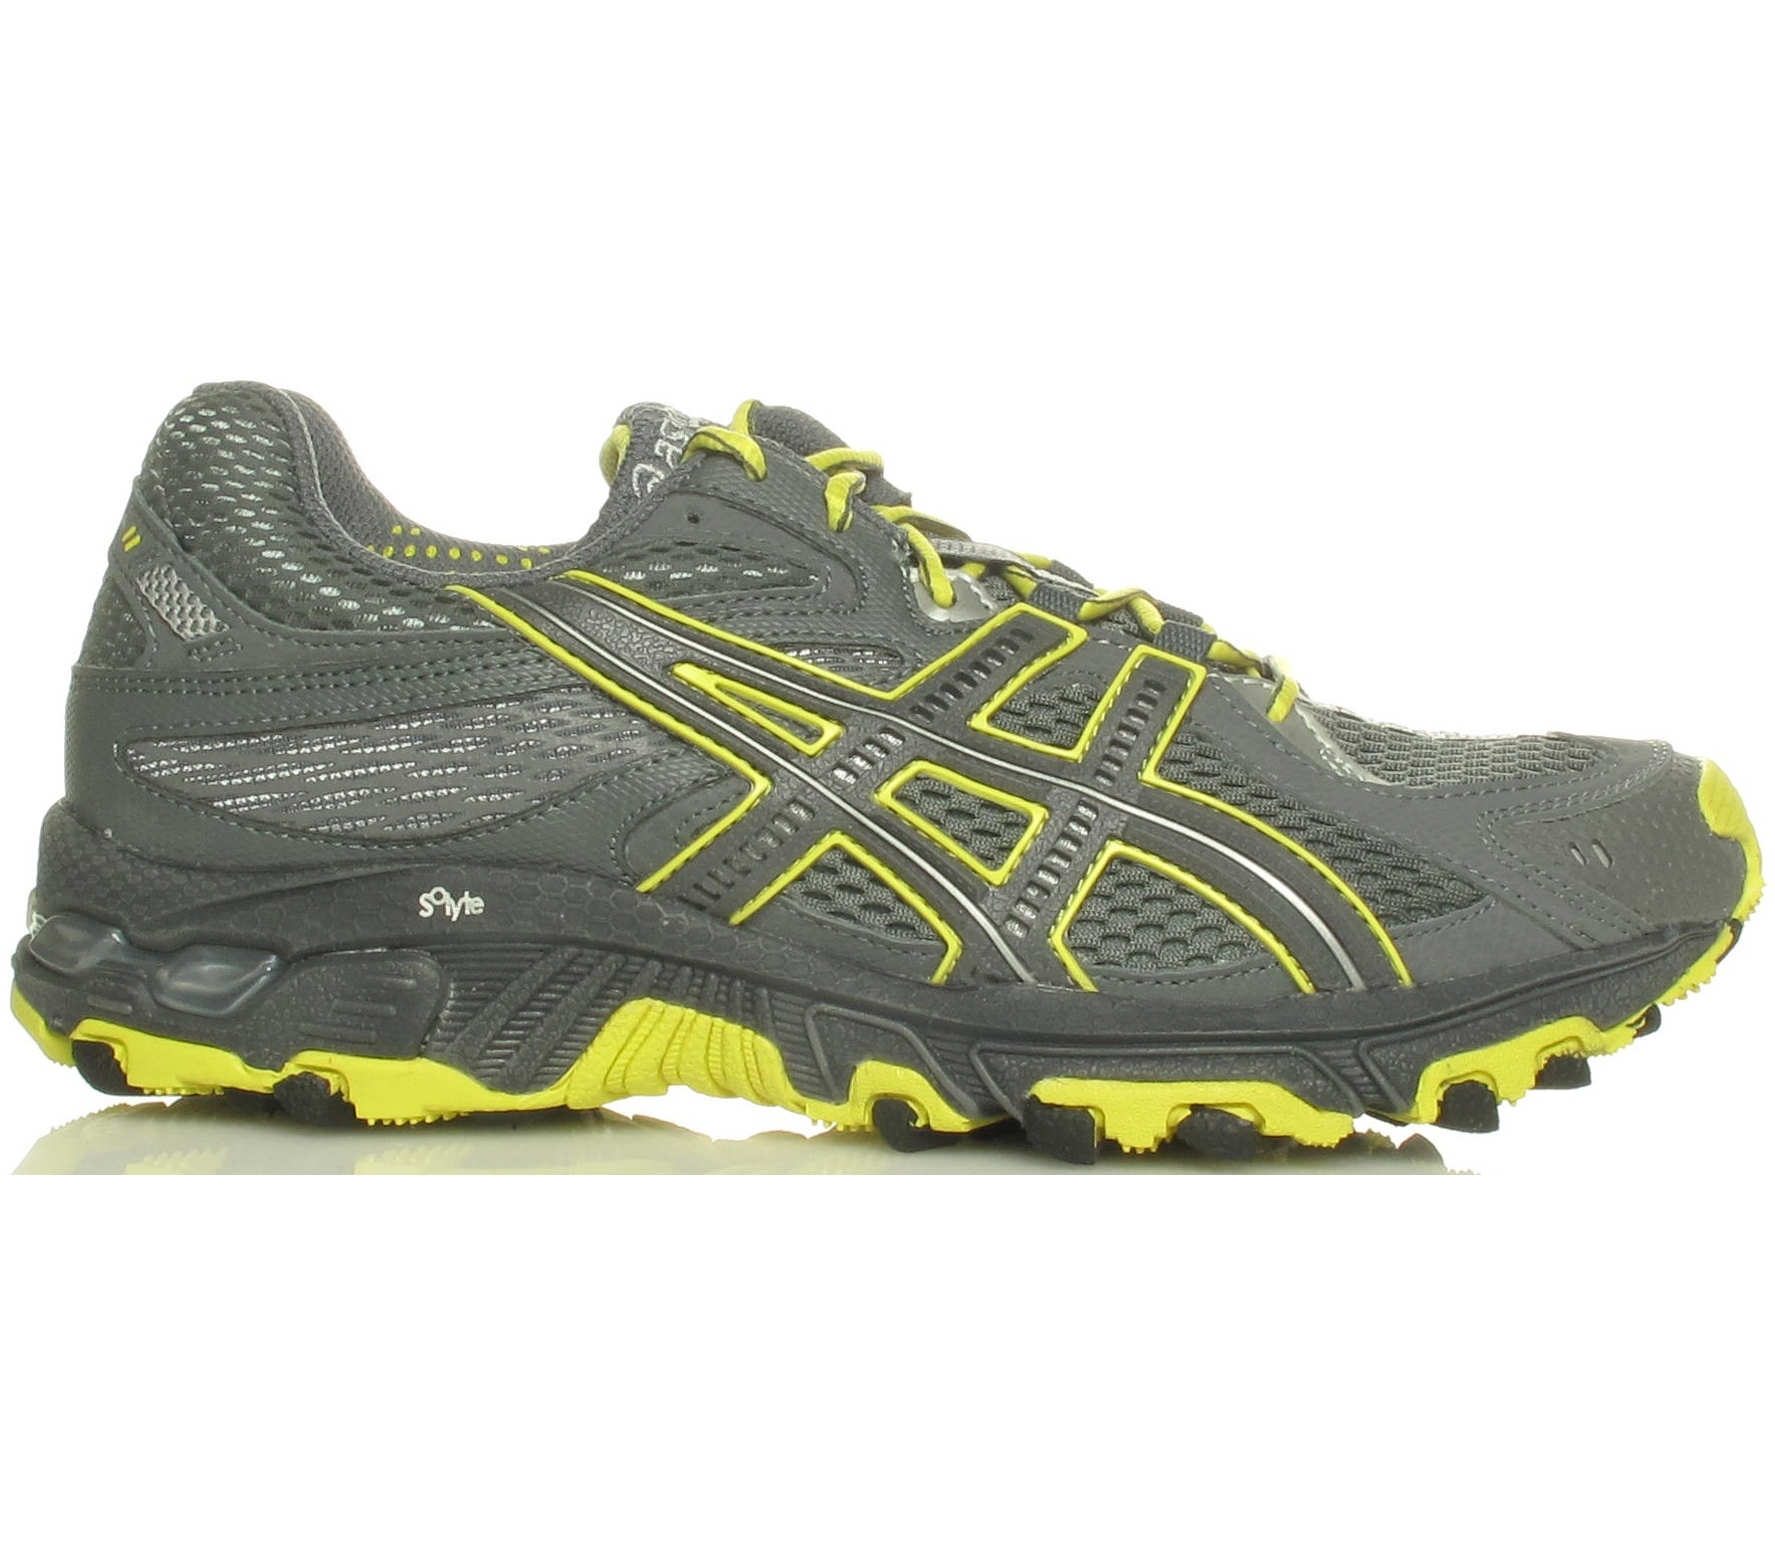 Asics - Running shoe - Women Gel-Upterra - black/silver